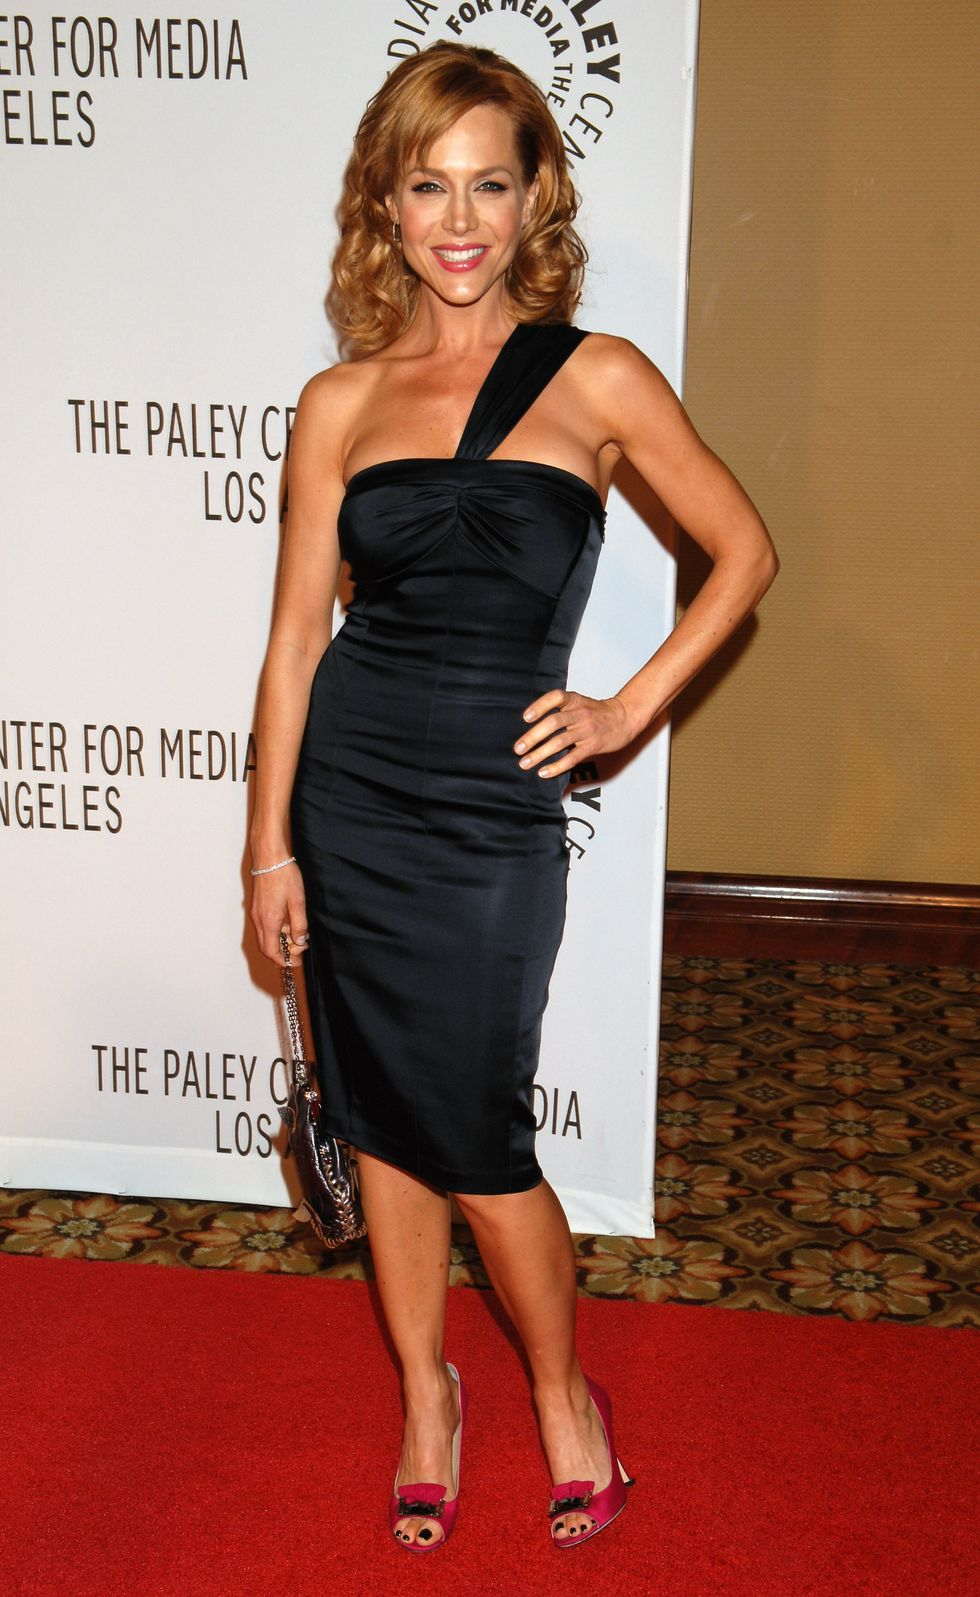 julie-benz-the-paley-center-for-medias-annual-los-angeles-gala-01